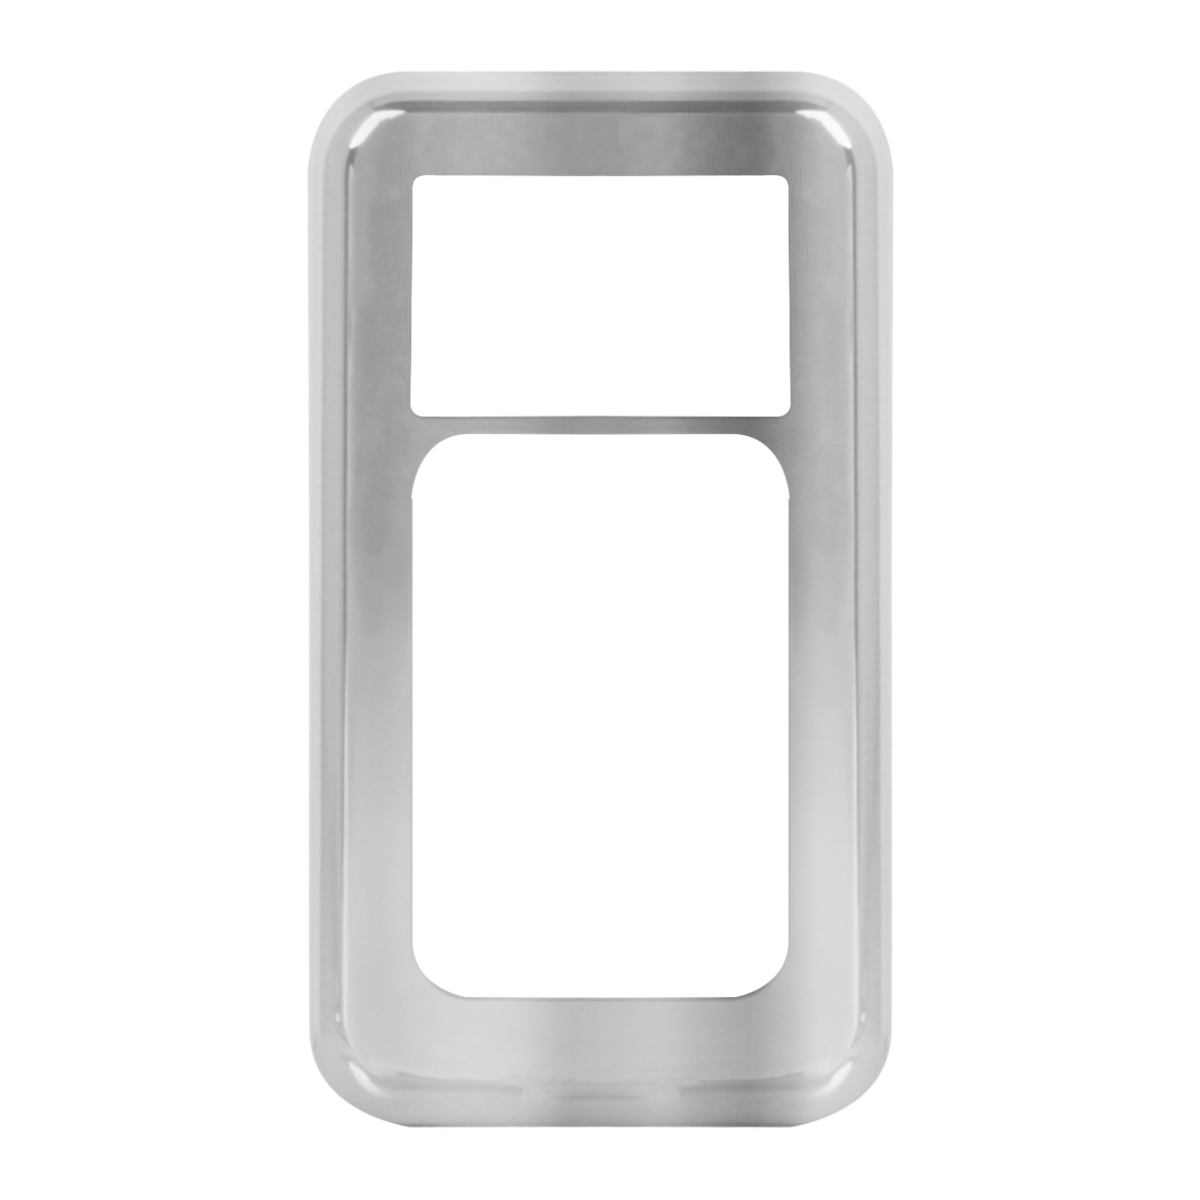 69005 Switch Plate Bezel for International I